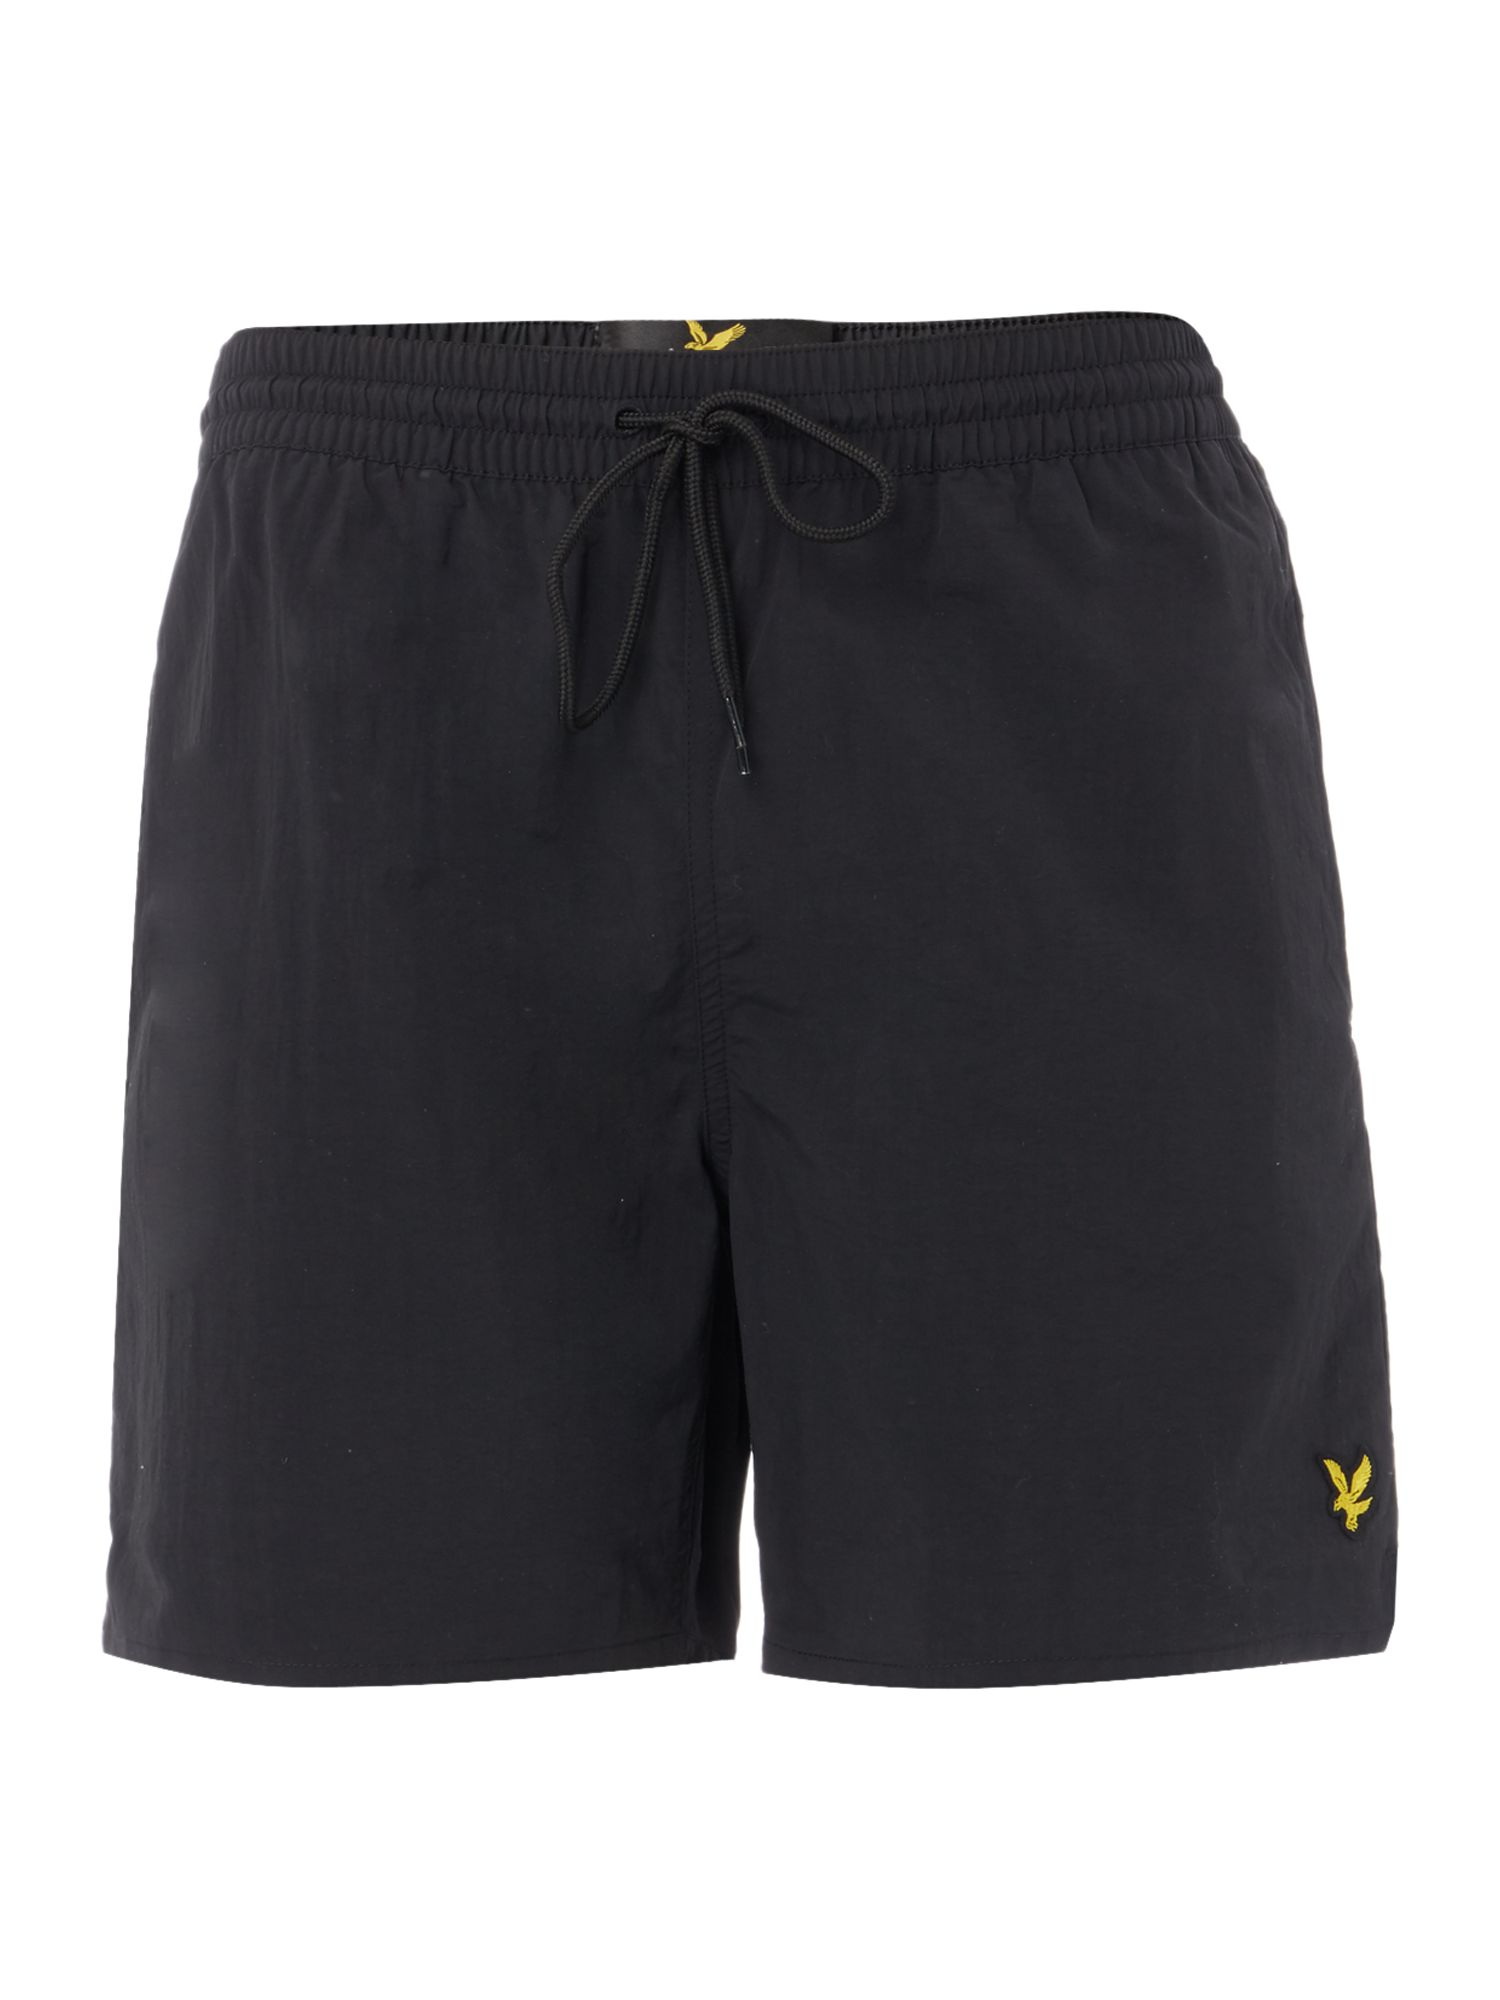 Men's Lyle and Scott Classic Plain Logo Short, Black